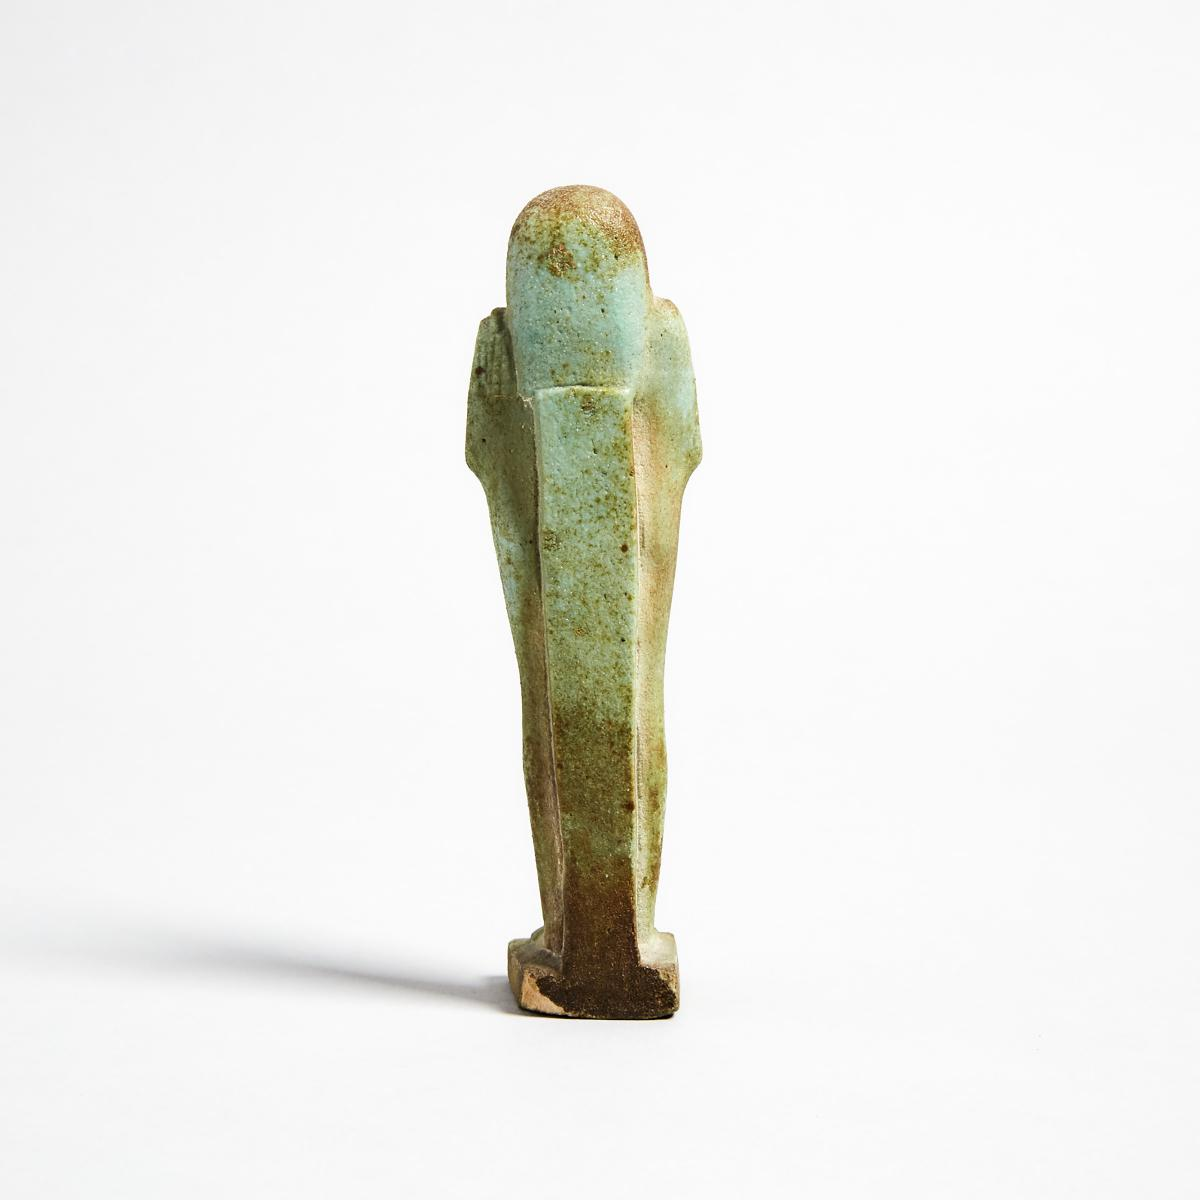 Egyptian Turquoise Faience Shabti, Late Period, 664-332 B.C., height 5.1 in — 13 cm - Image 2 of 2